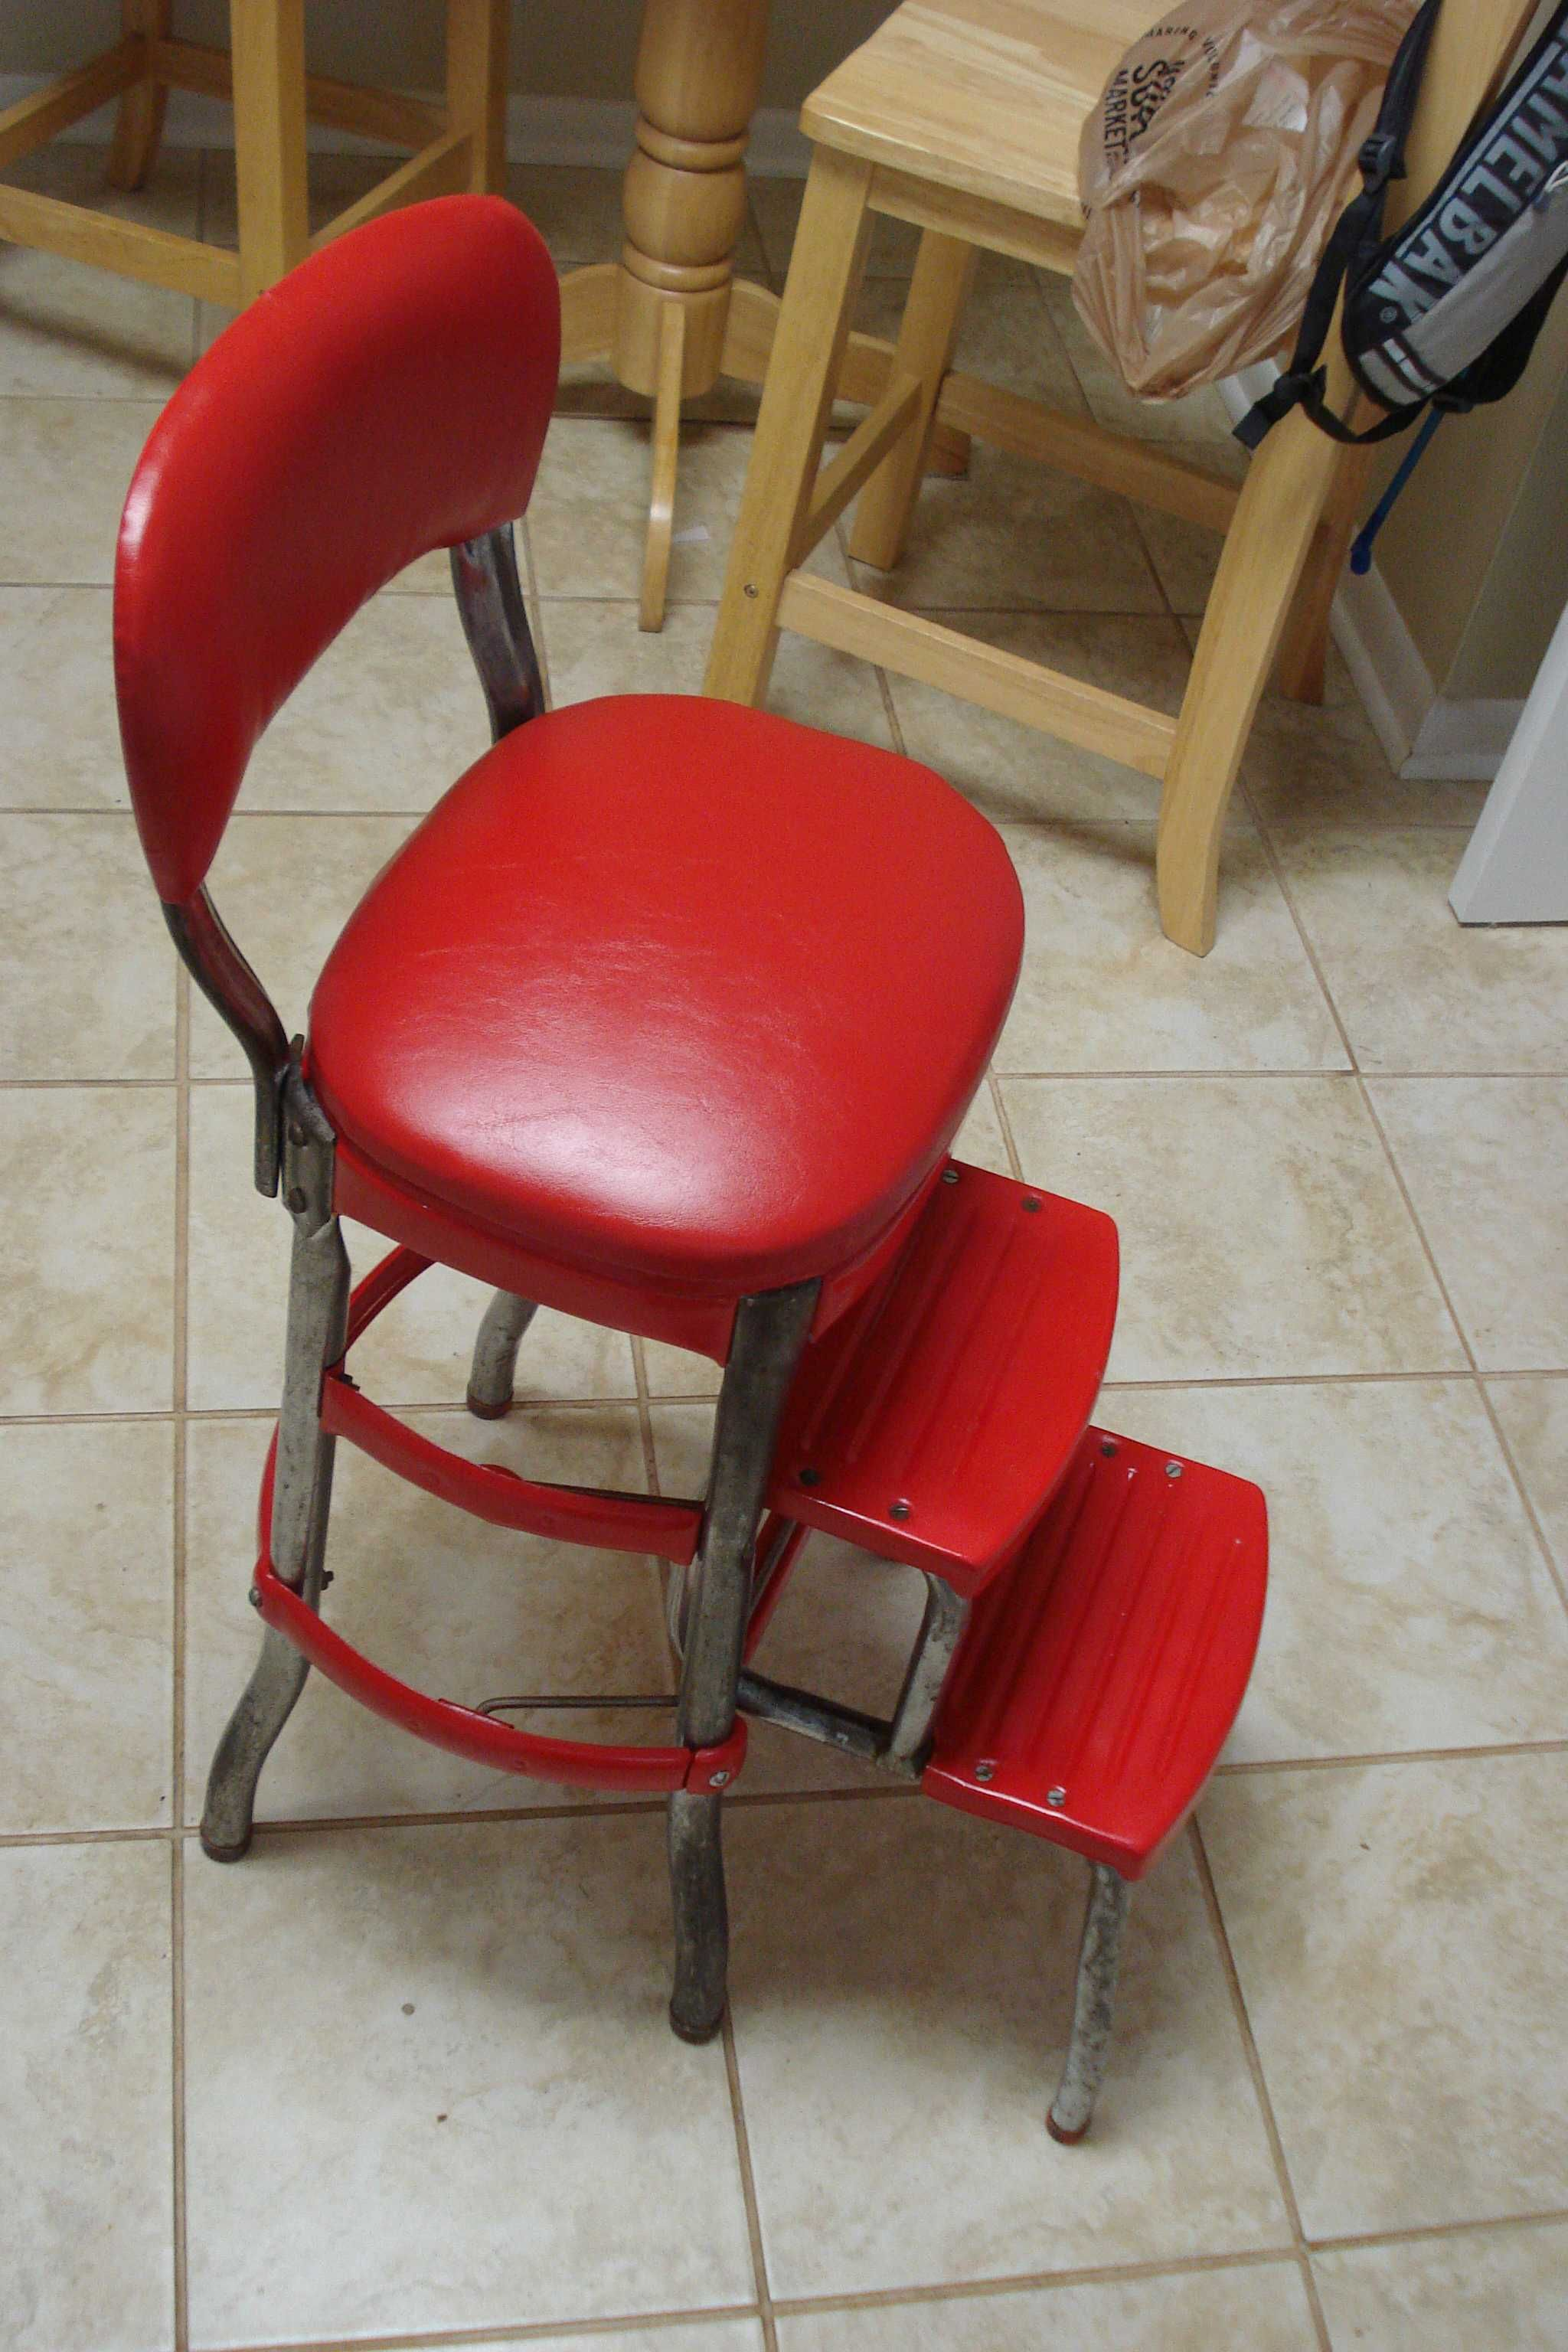 Starting Around The Columbus, Indiana Based Columbus Supply Company (COSCO)  Started Manufacturing A Combination Chair/step Ladder.